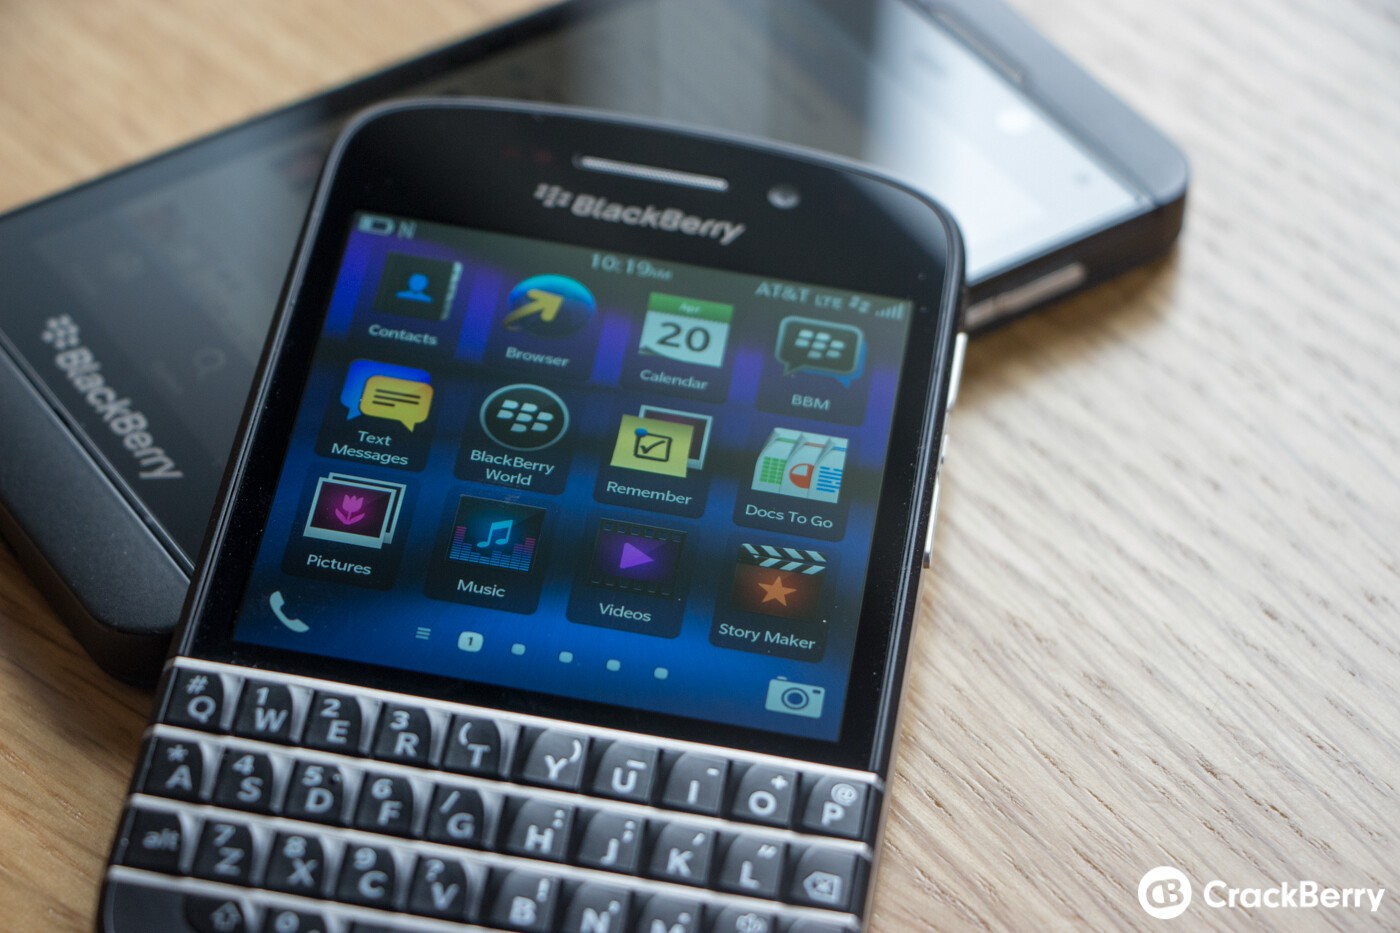 BlackBerry Q10 and BlackBerry Z10